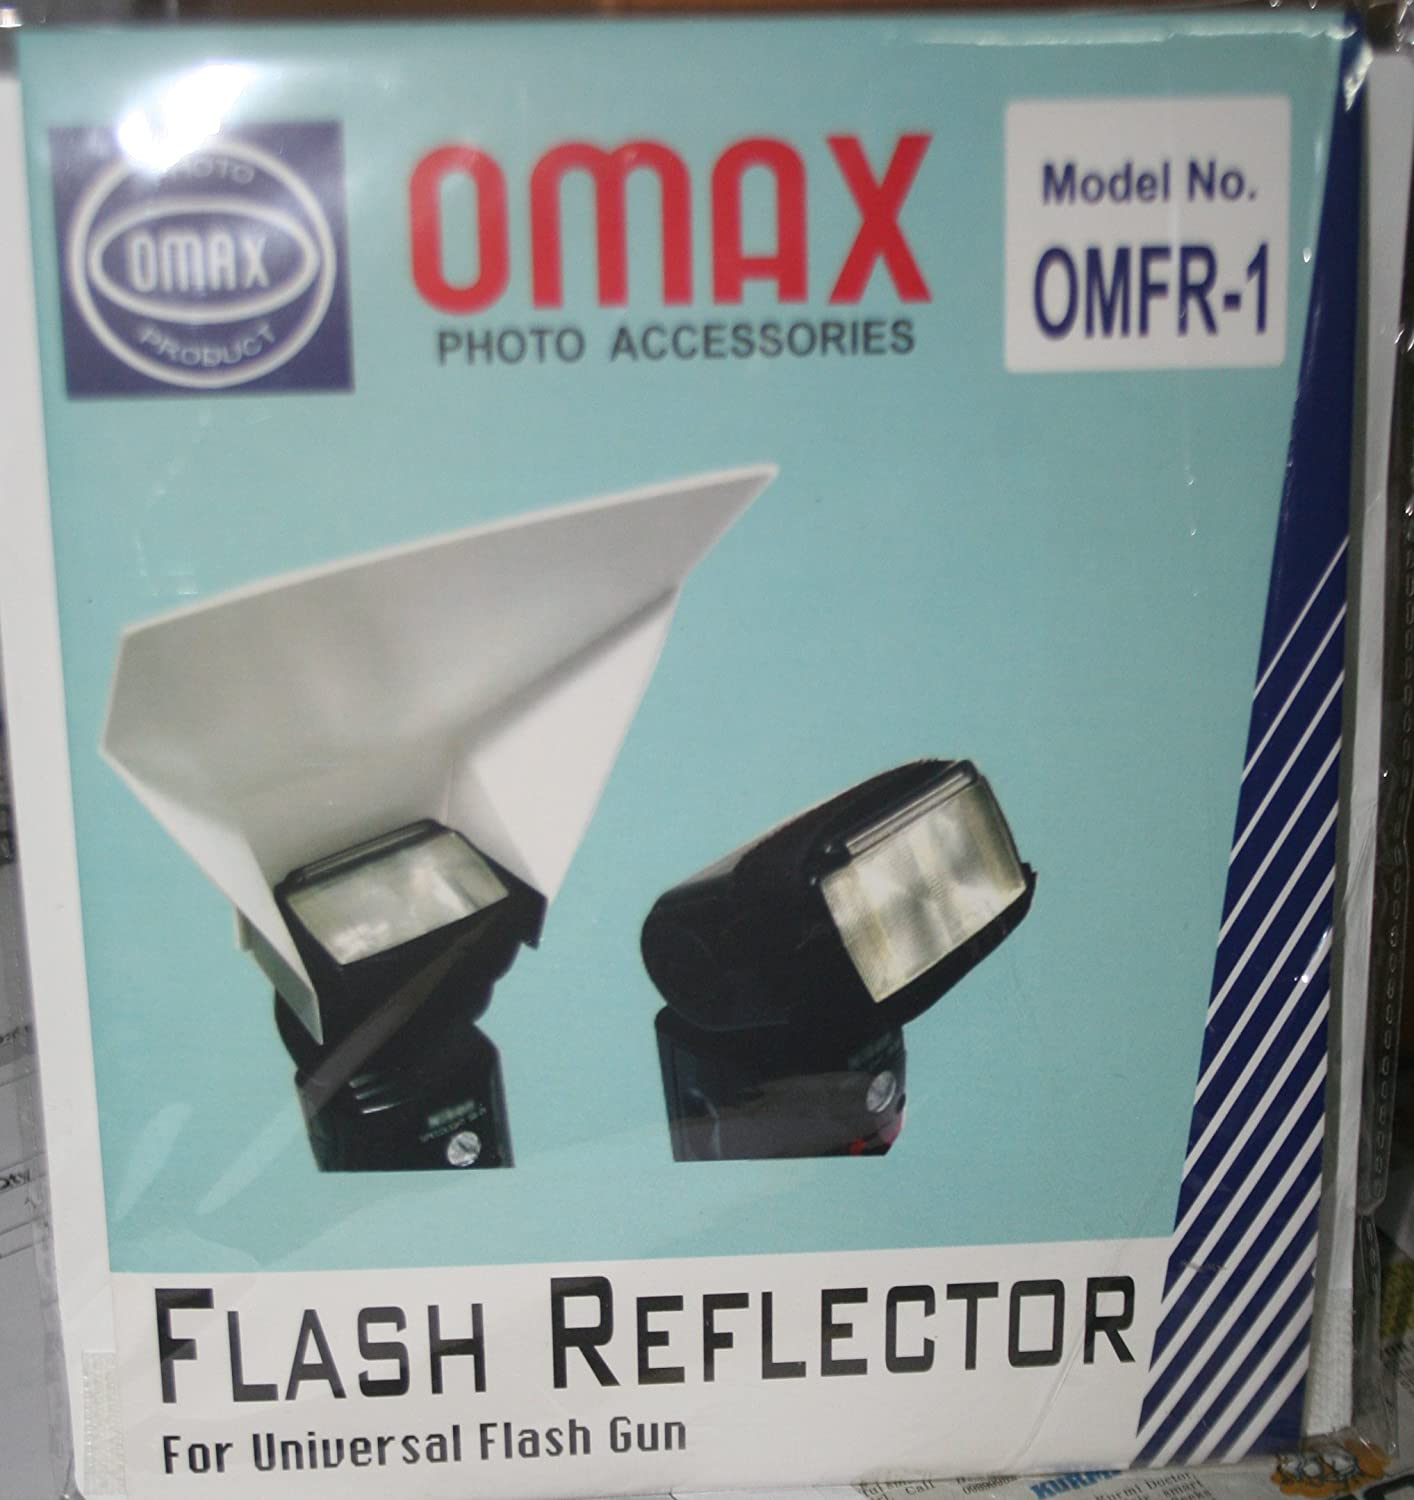 Omax OMFR-1 Flash Reflector